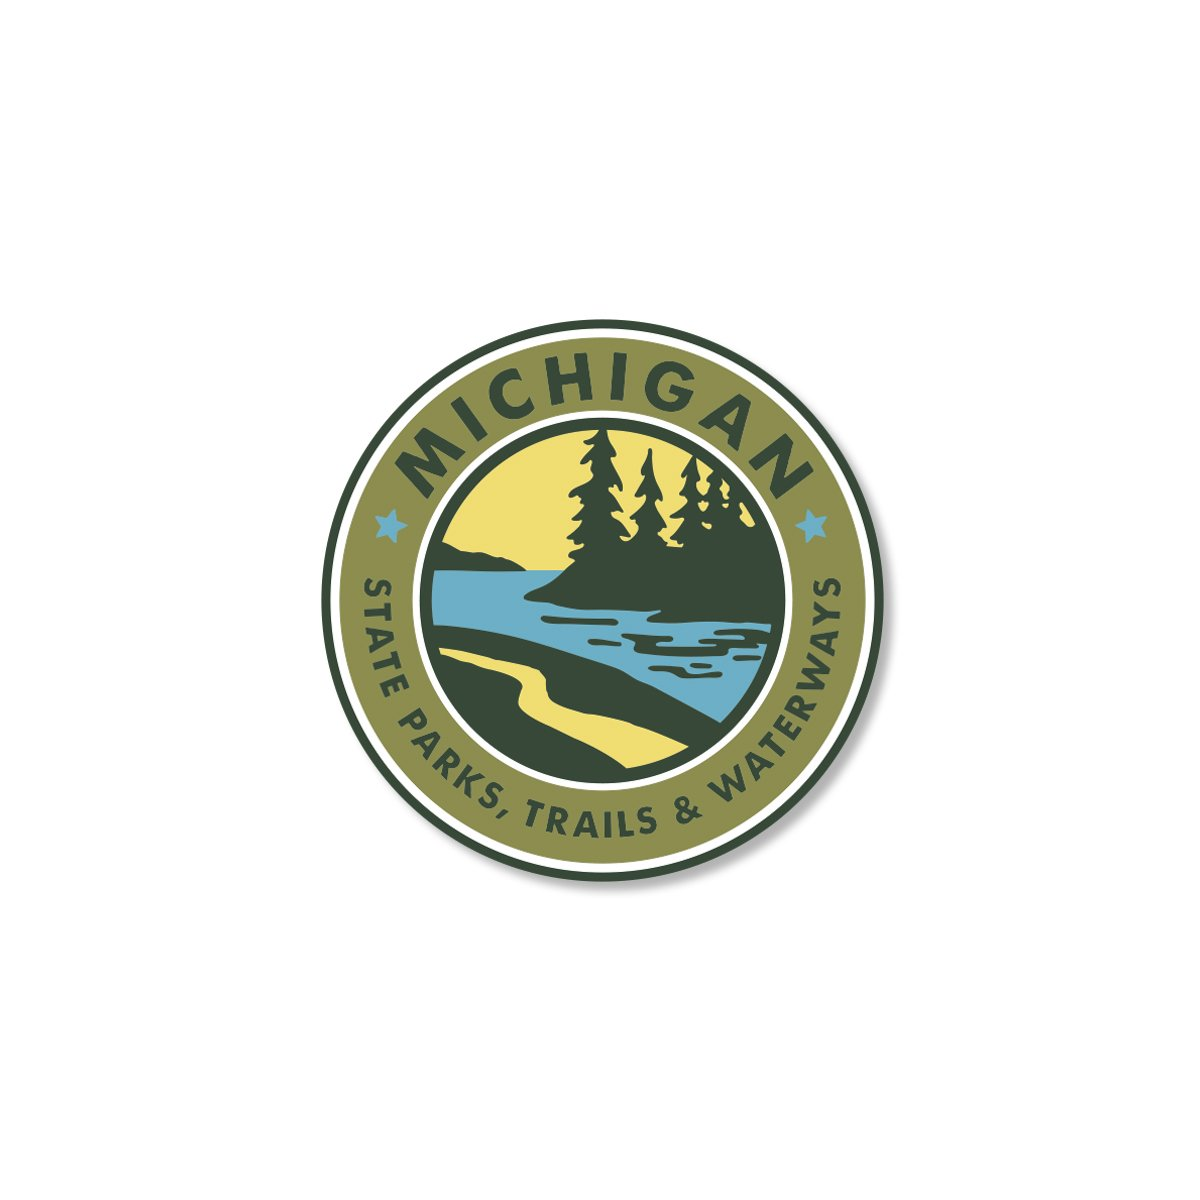 Parks Trails Waterways Michigan Sticker Michigan sticker